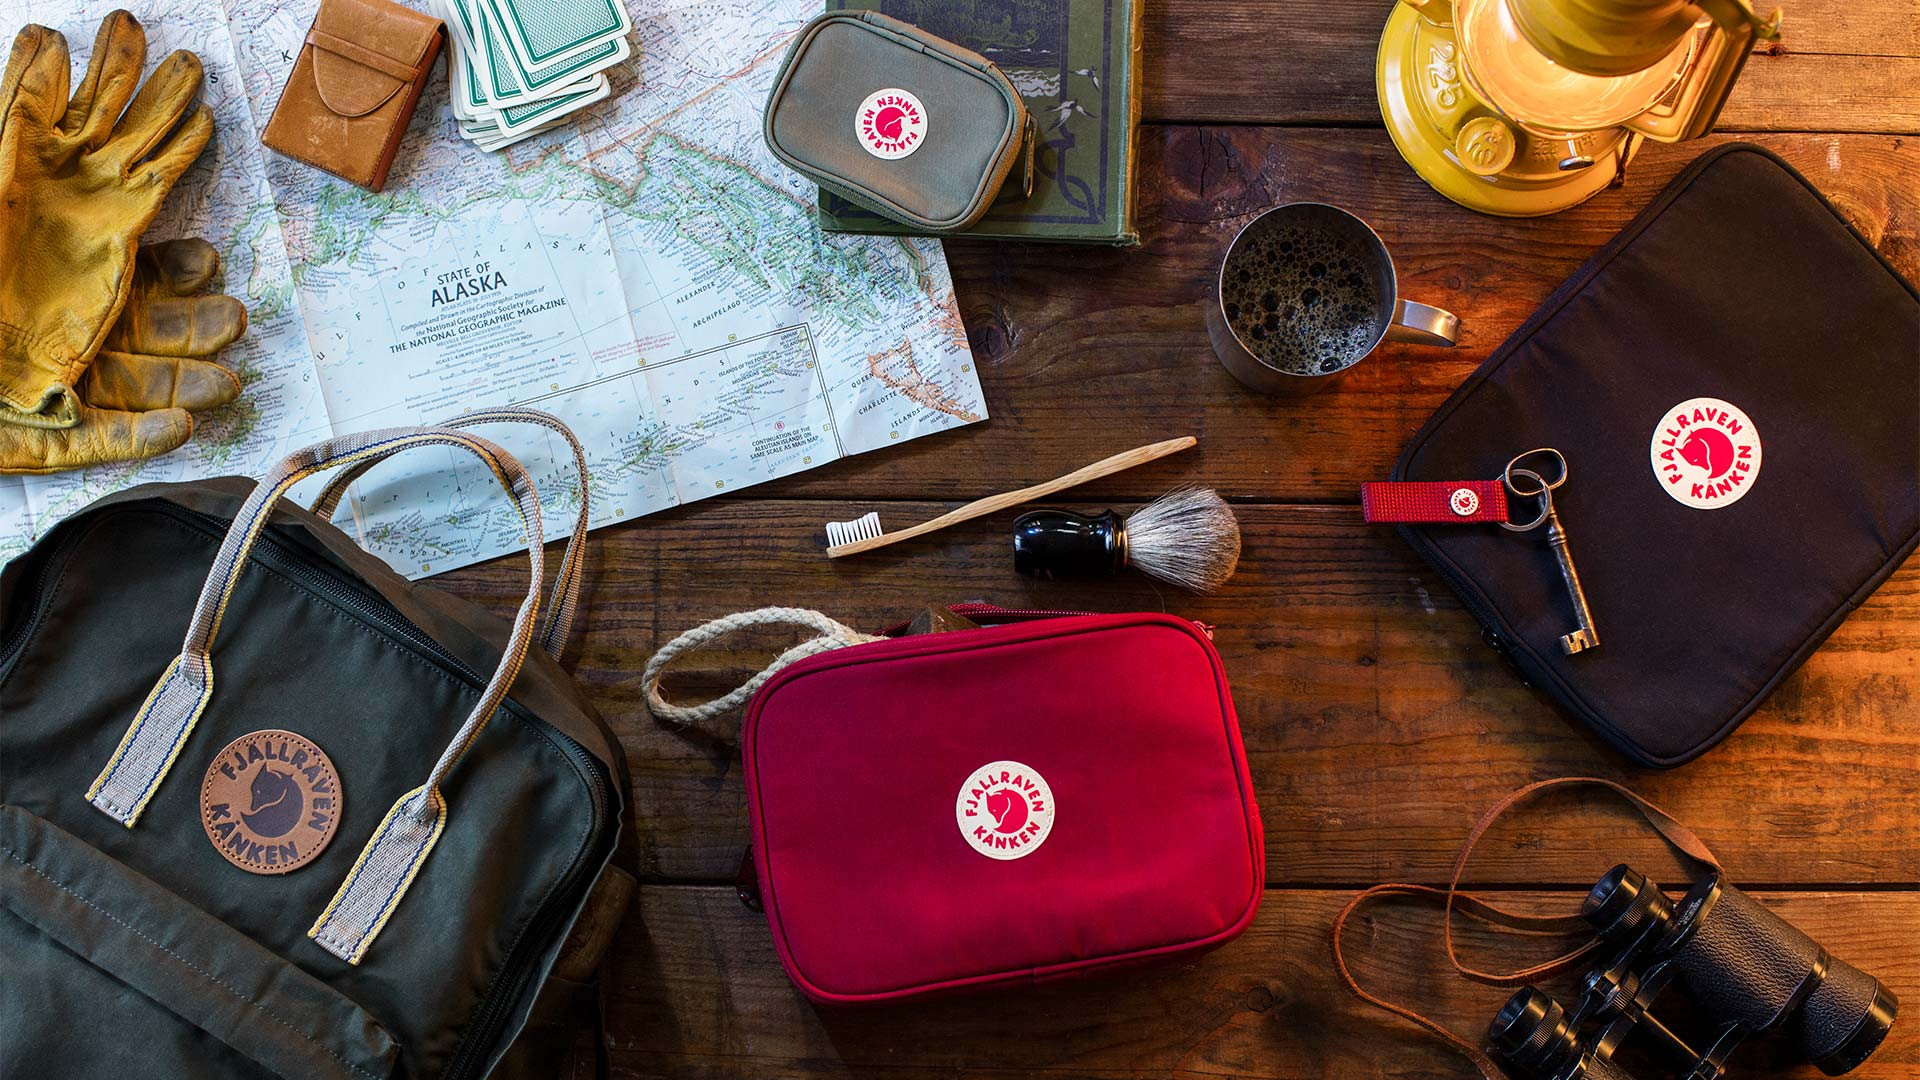 The Fjallraven Kanken Essentials kit